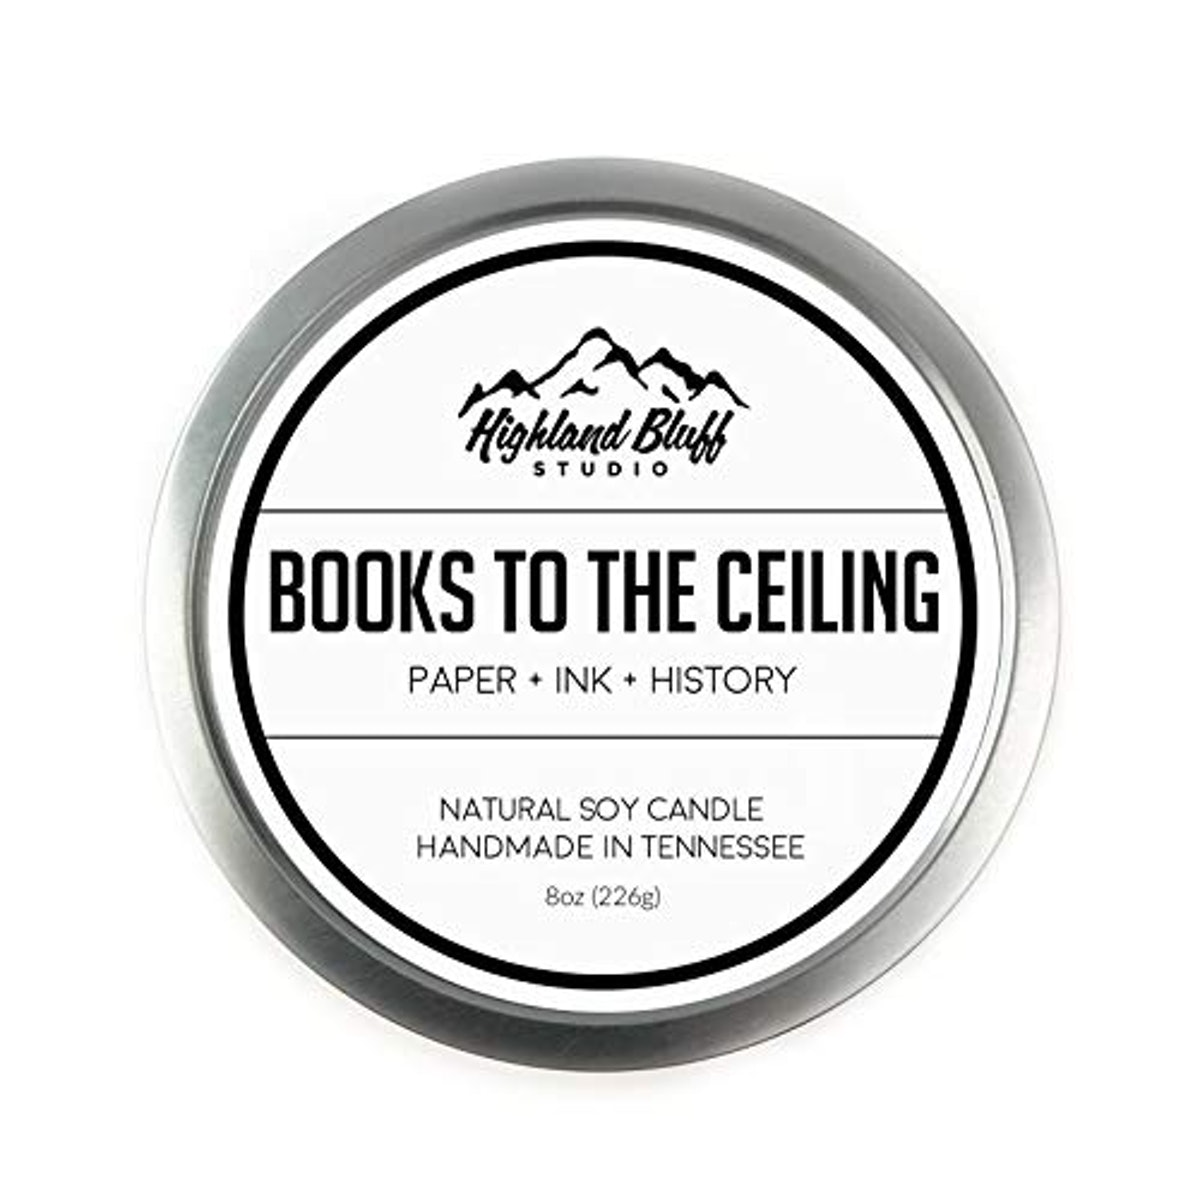 Highland Bluff Studio Books To The Ceiling Soy Candle